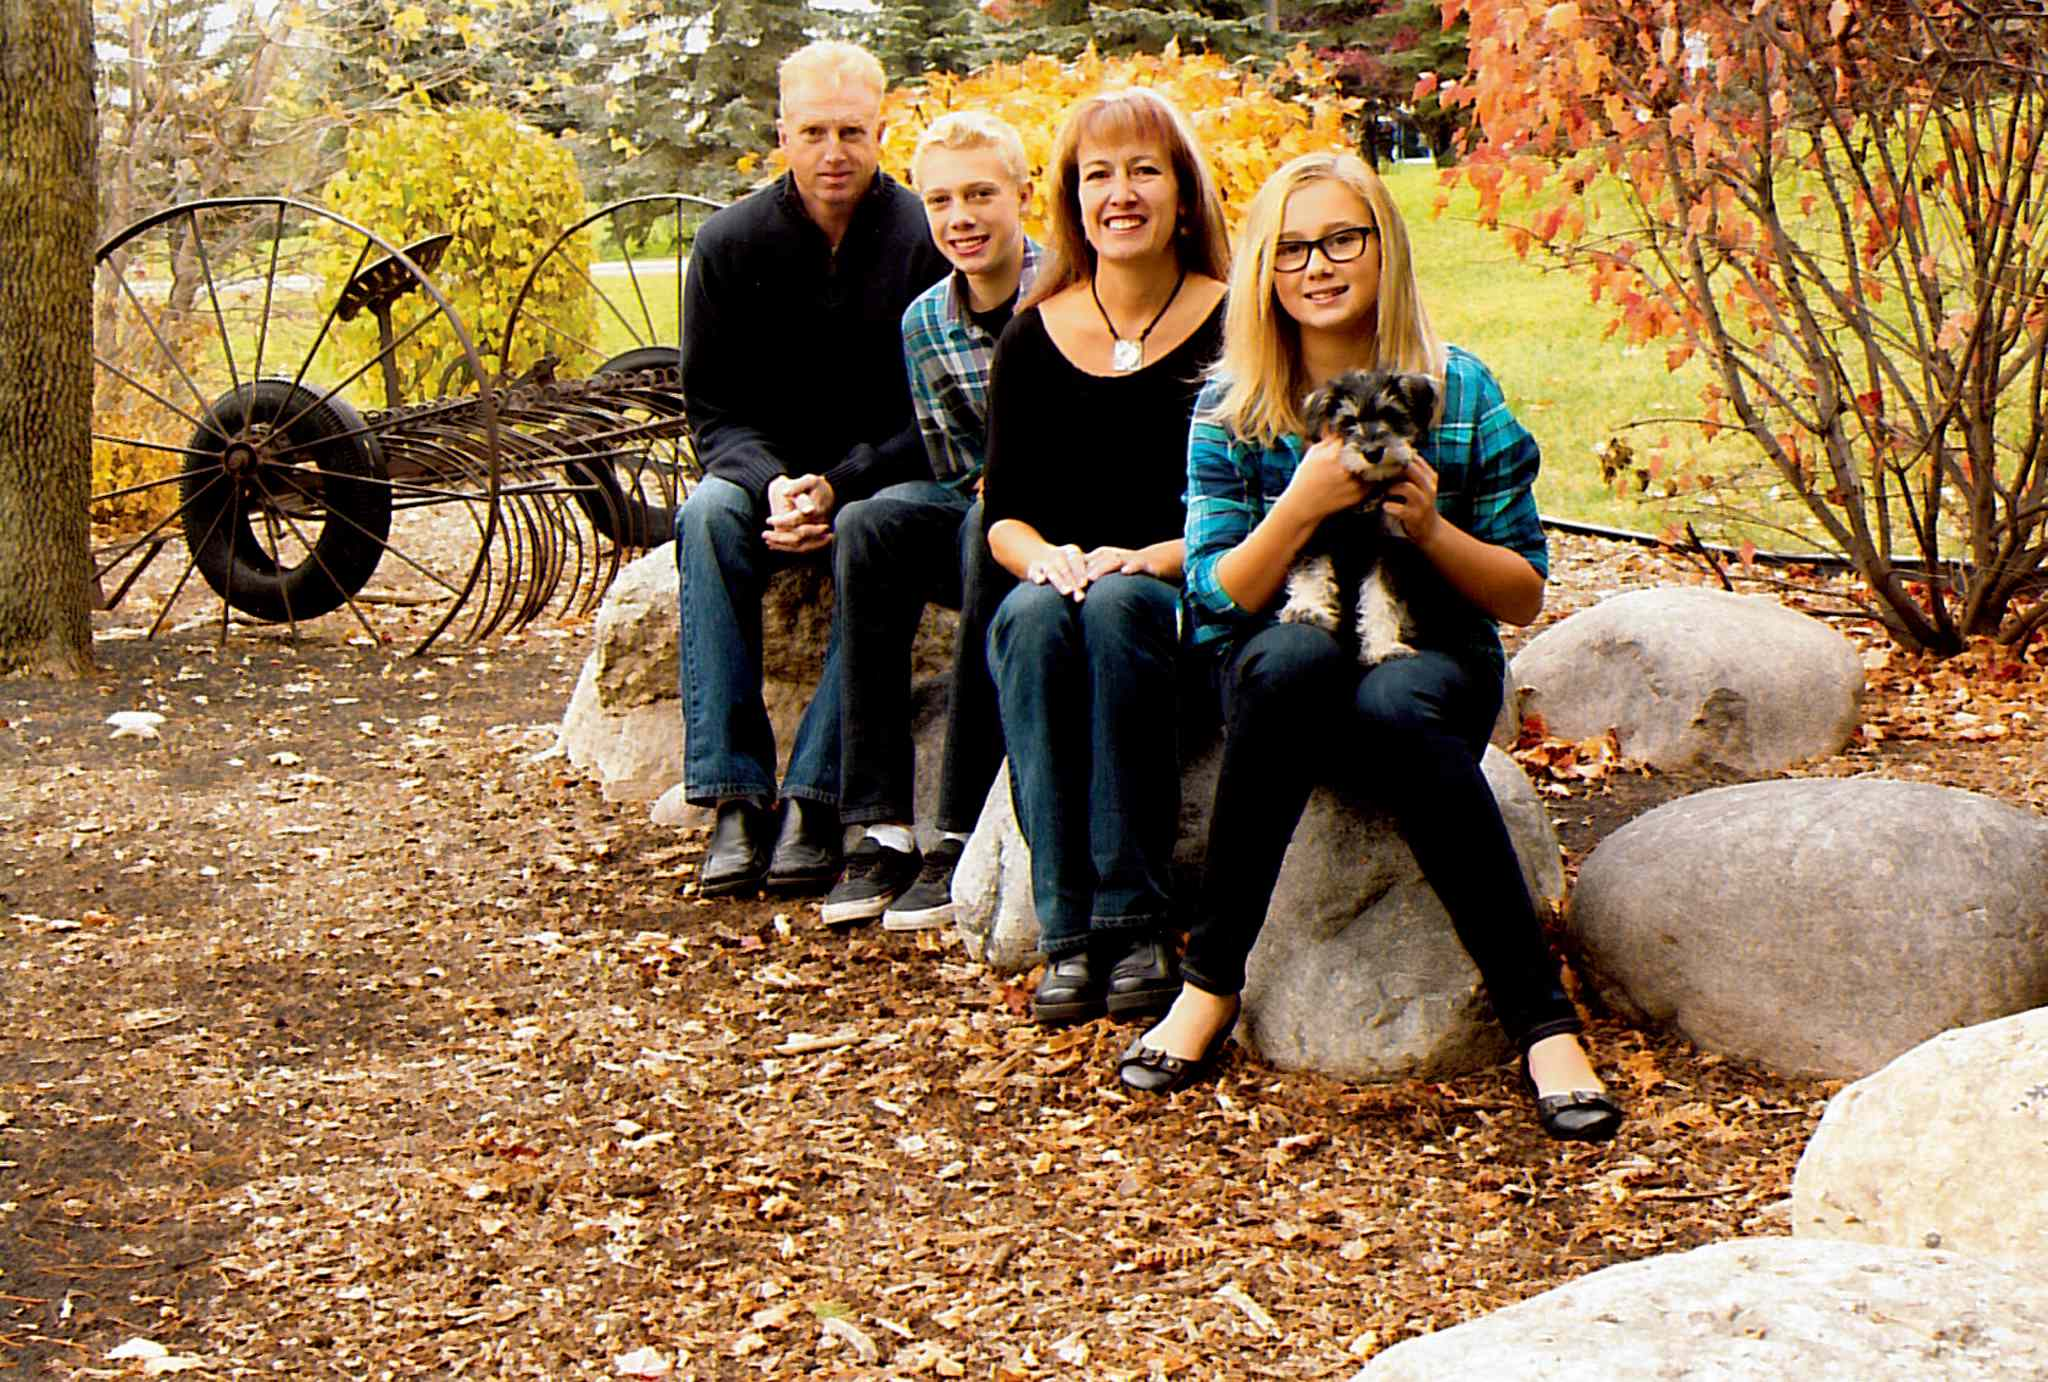 The Little family - Brad, Riley, Karen, and Kayla - is shown in a photo taken in September.